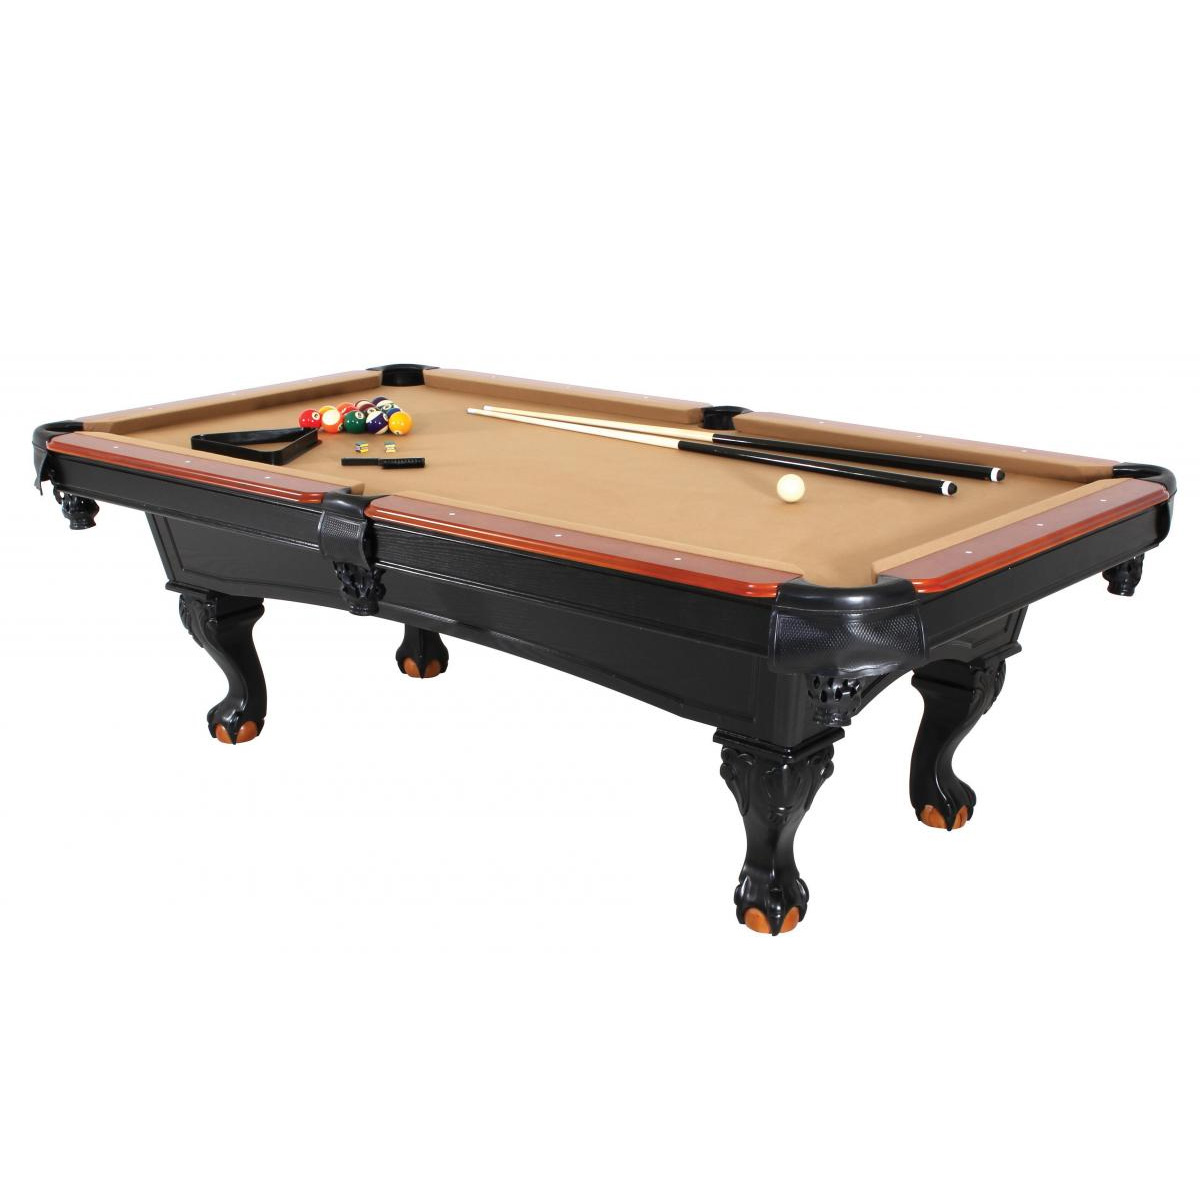 Minnesota Fats Covington Pool Table GameTablesOnlinecom - Fats pool table